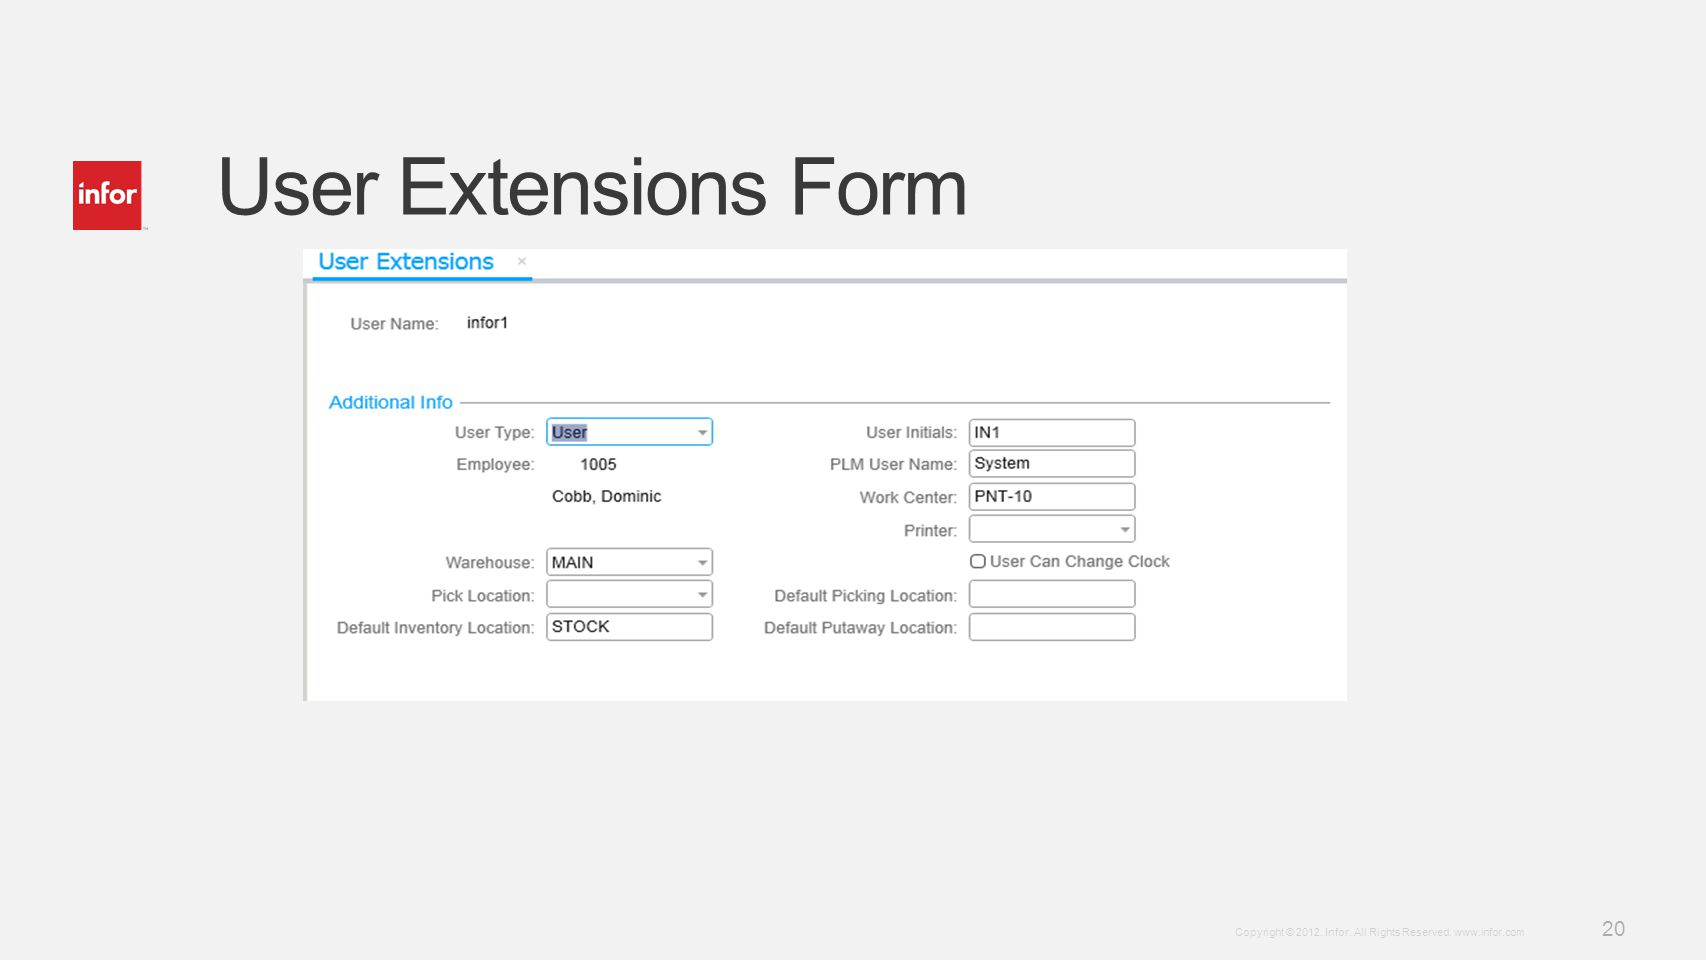 User Extensions Form